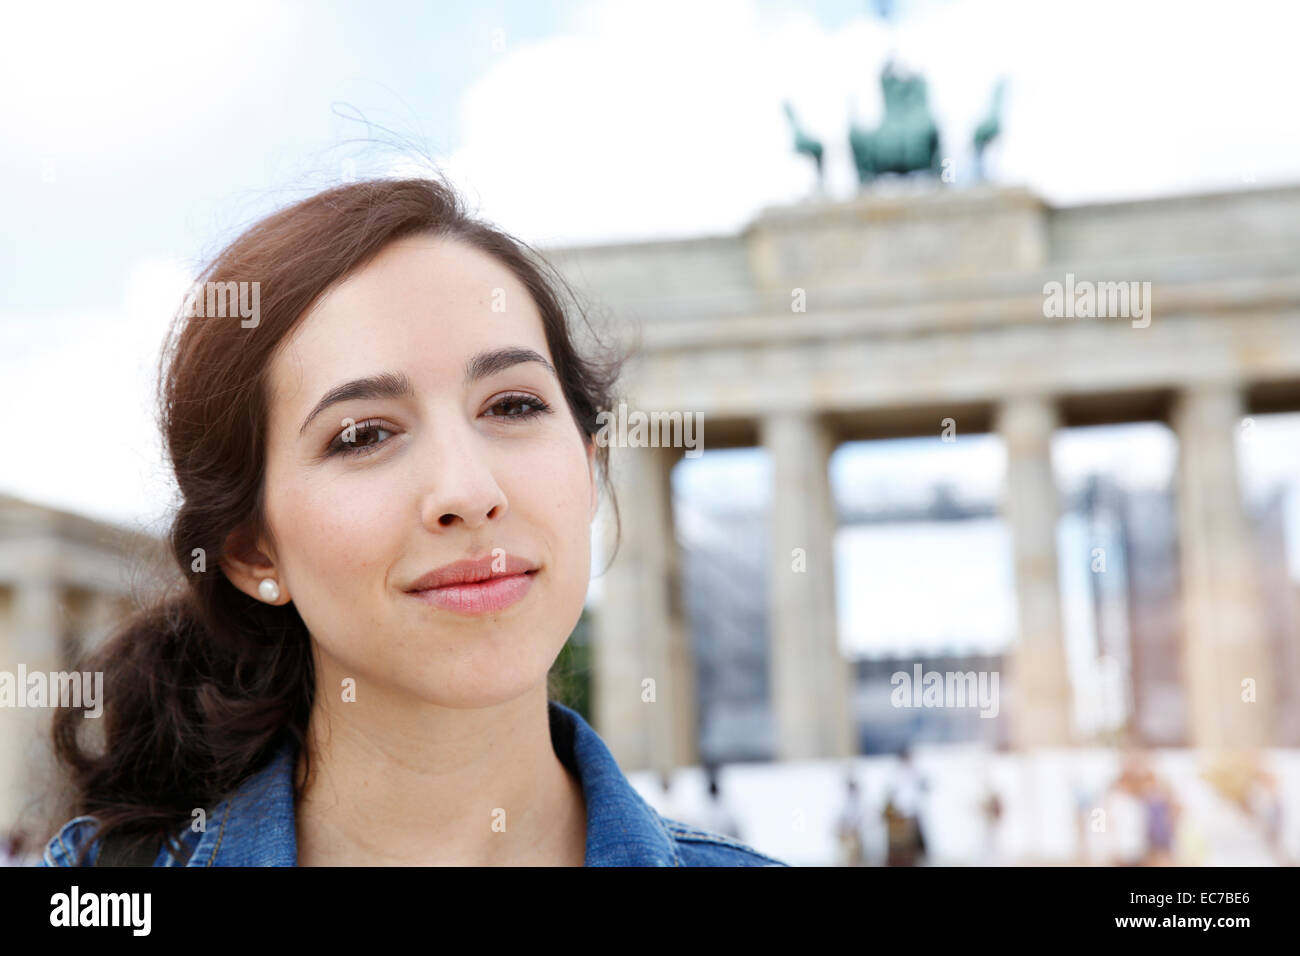 Germany, Berlin, portrait of young female tourist on city trip in front of Brandenburg Gate - Stock Image